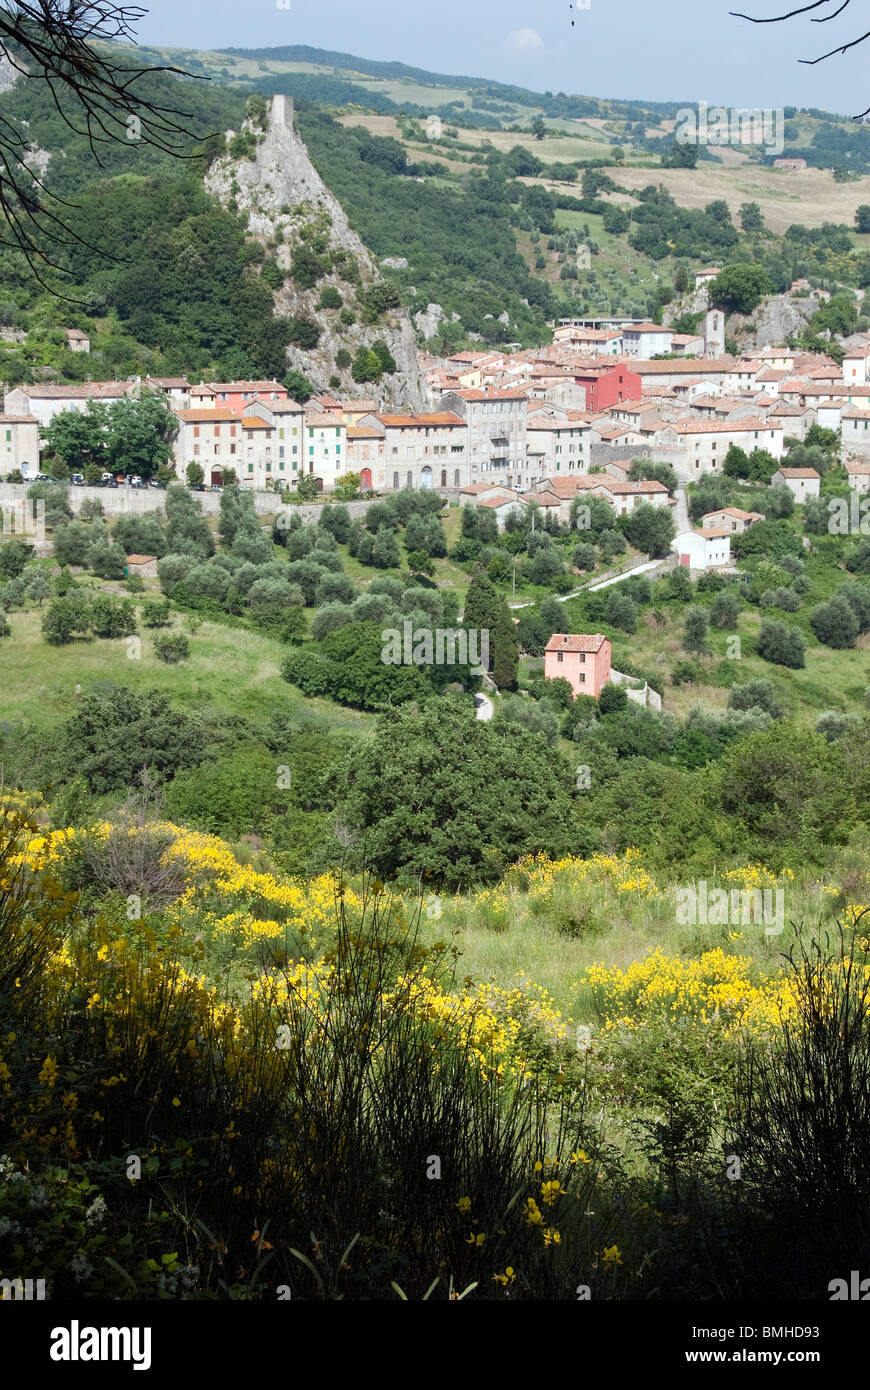 Town of Roccalbegna in the Maremma area of the Grosseto Province Tuscany Italy - Stock Image